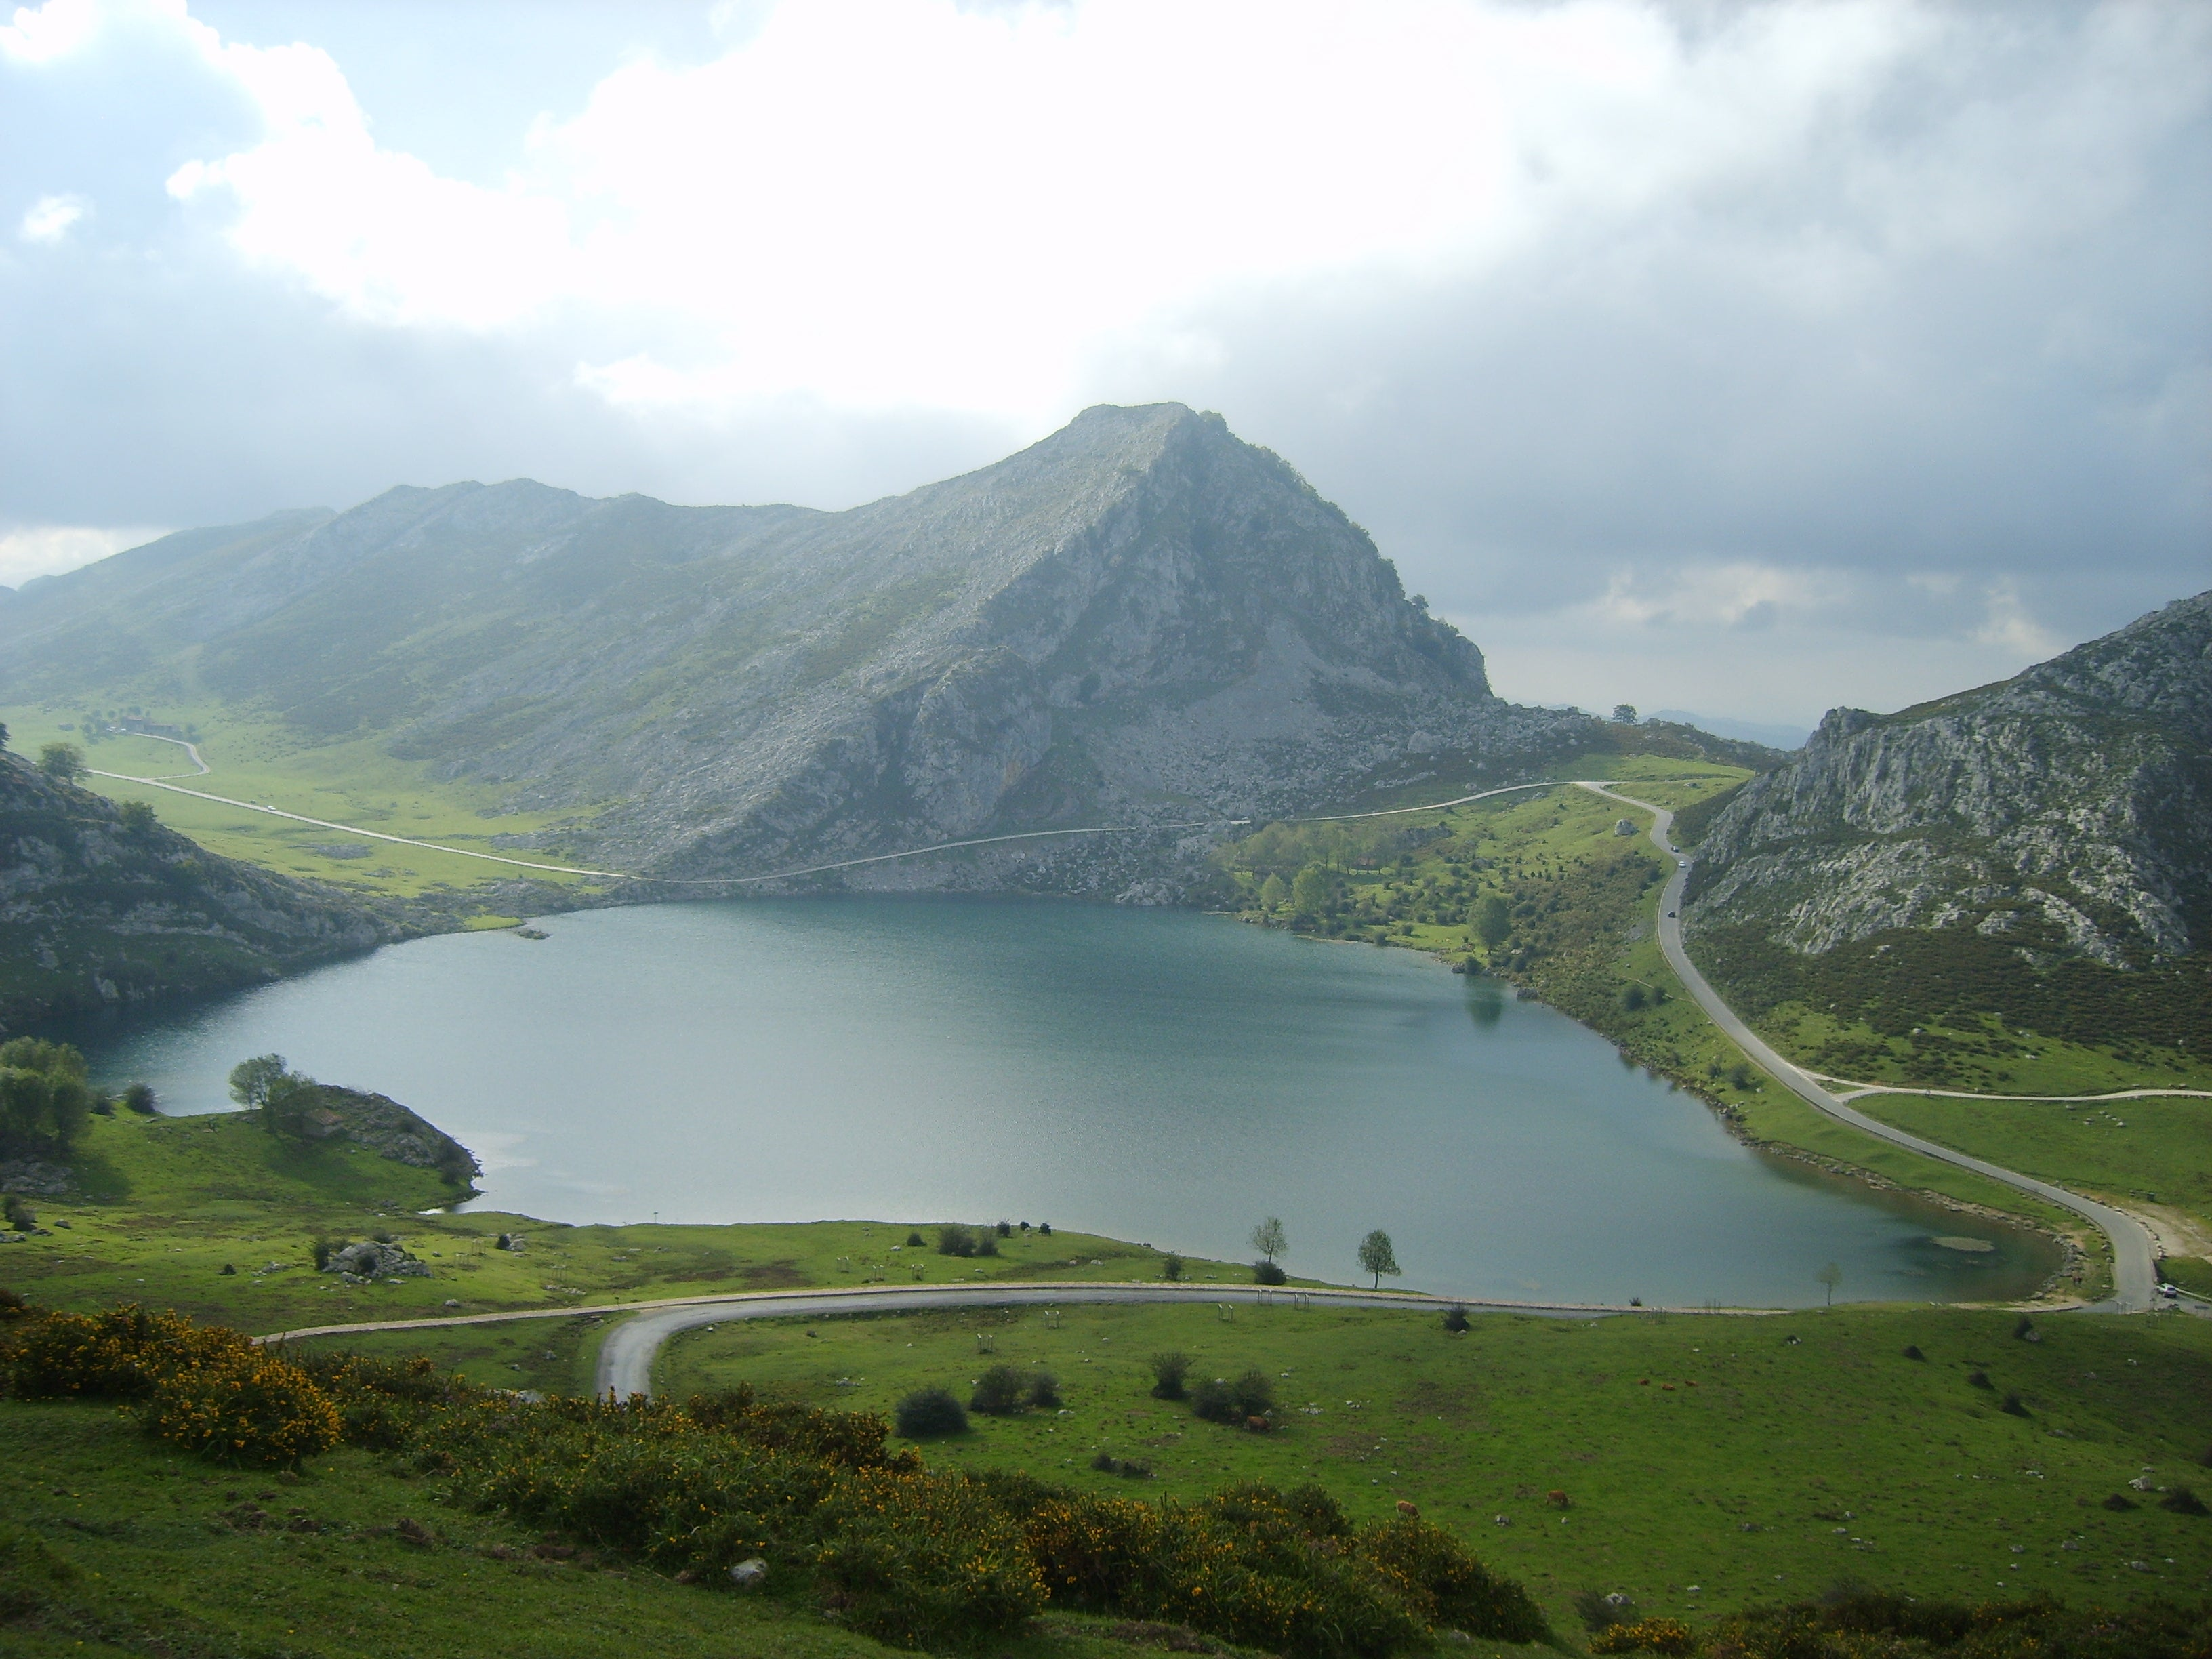 Green in The Lakes of Covadonga - Enol and Ercina lakes